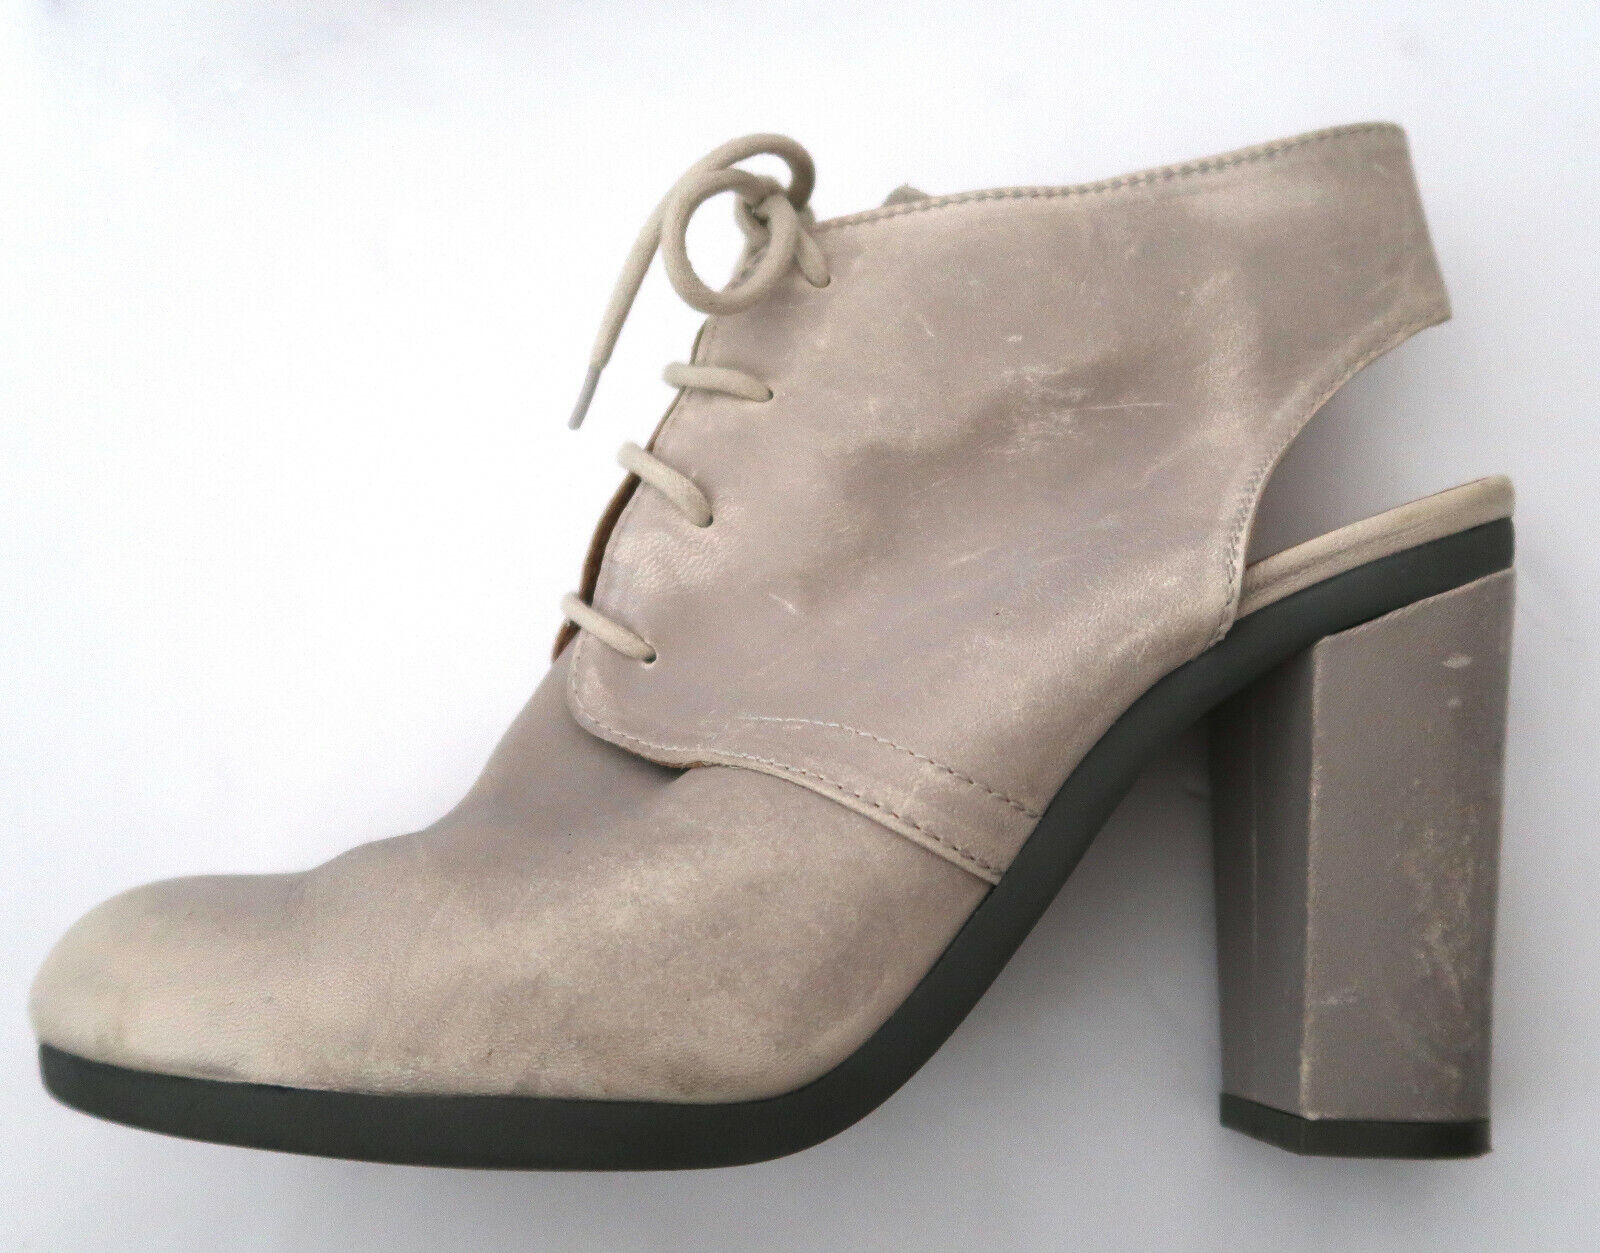 MM6 MARTIN MARGIELA distressed leather bootie sho… - image 4